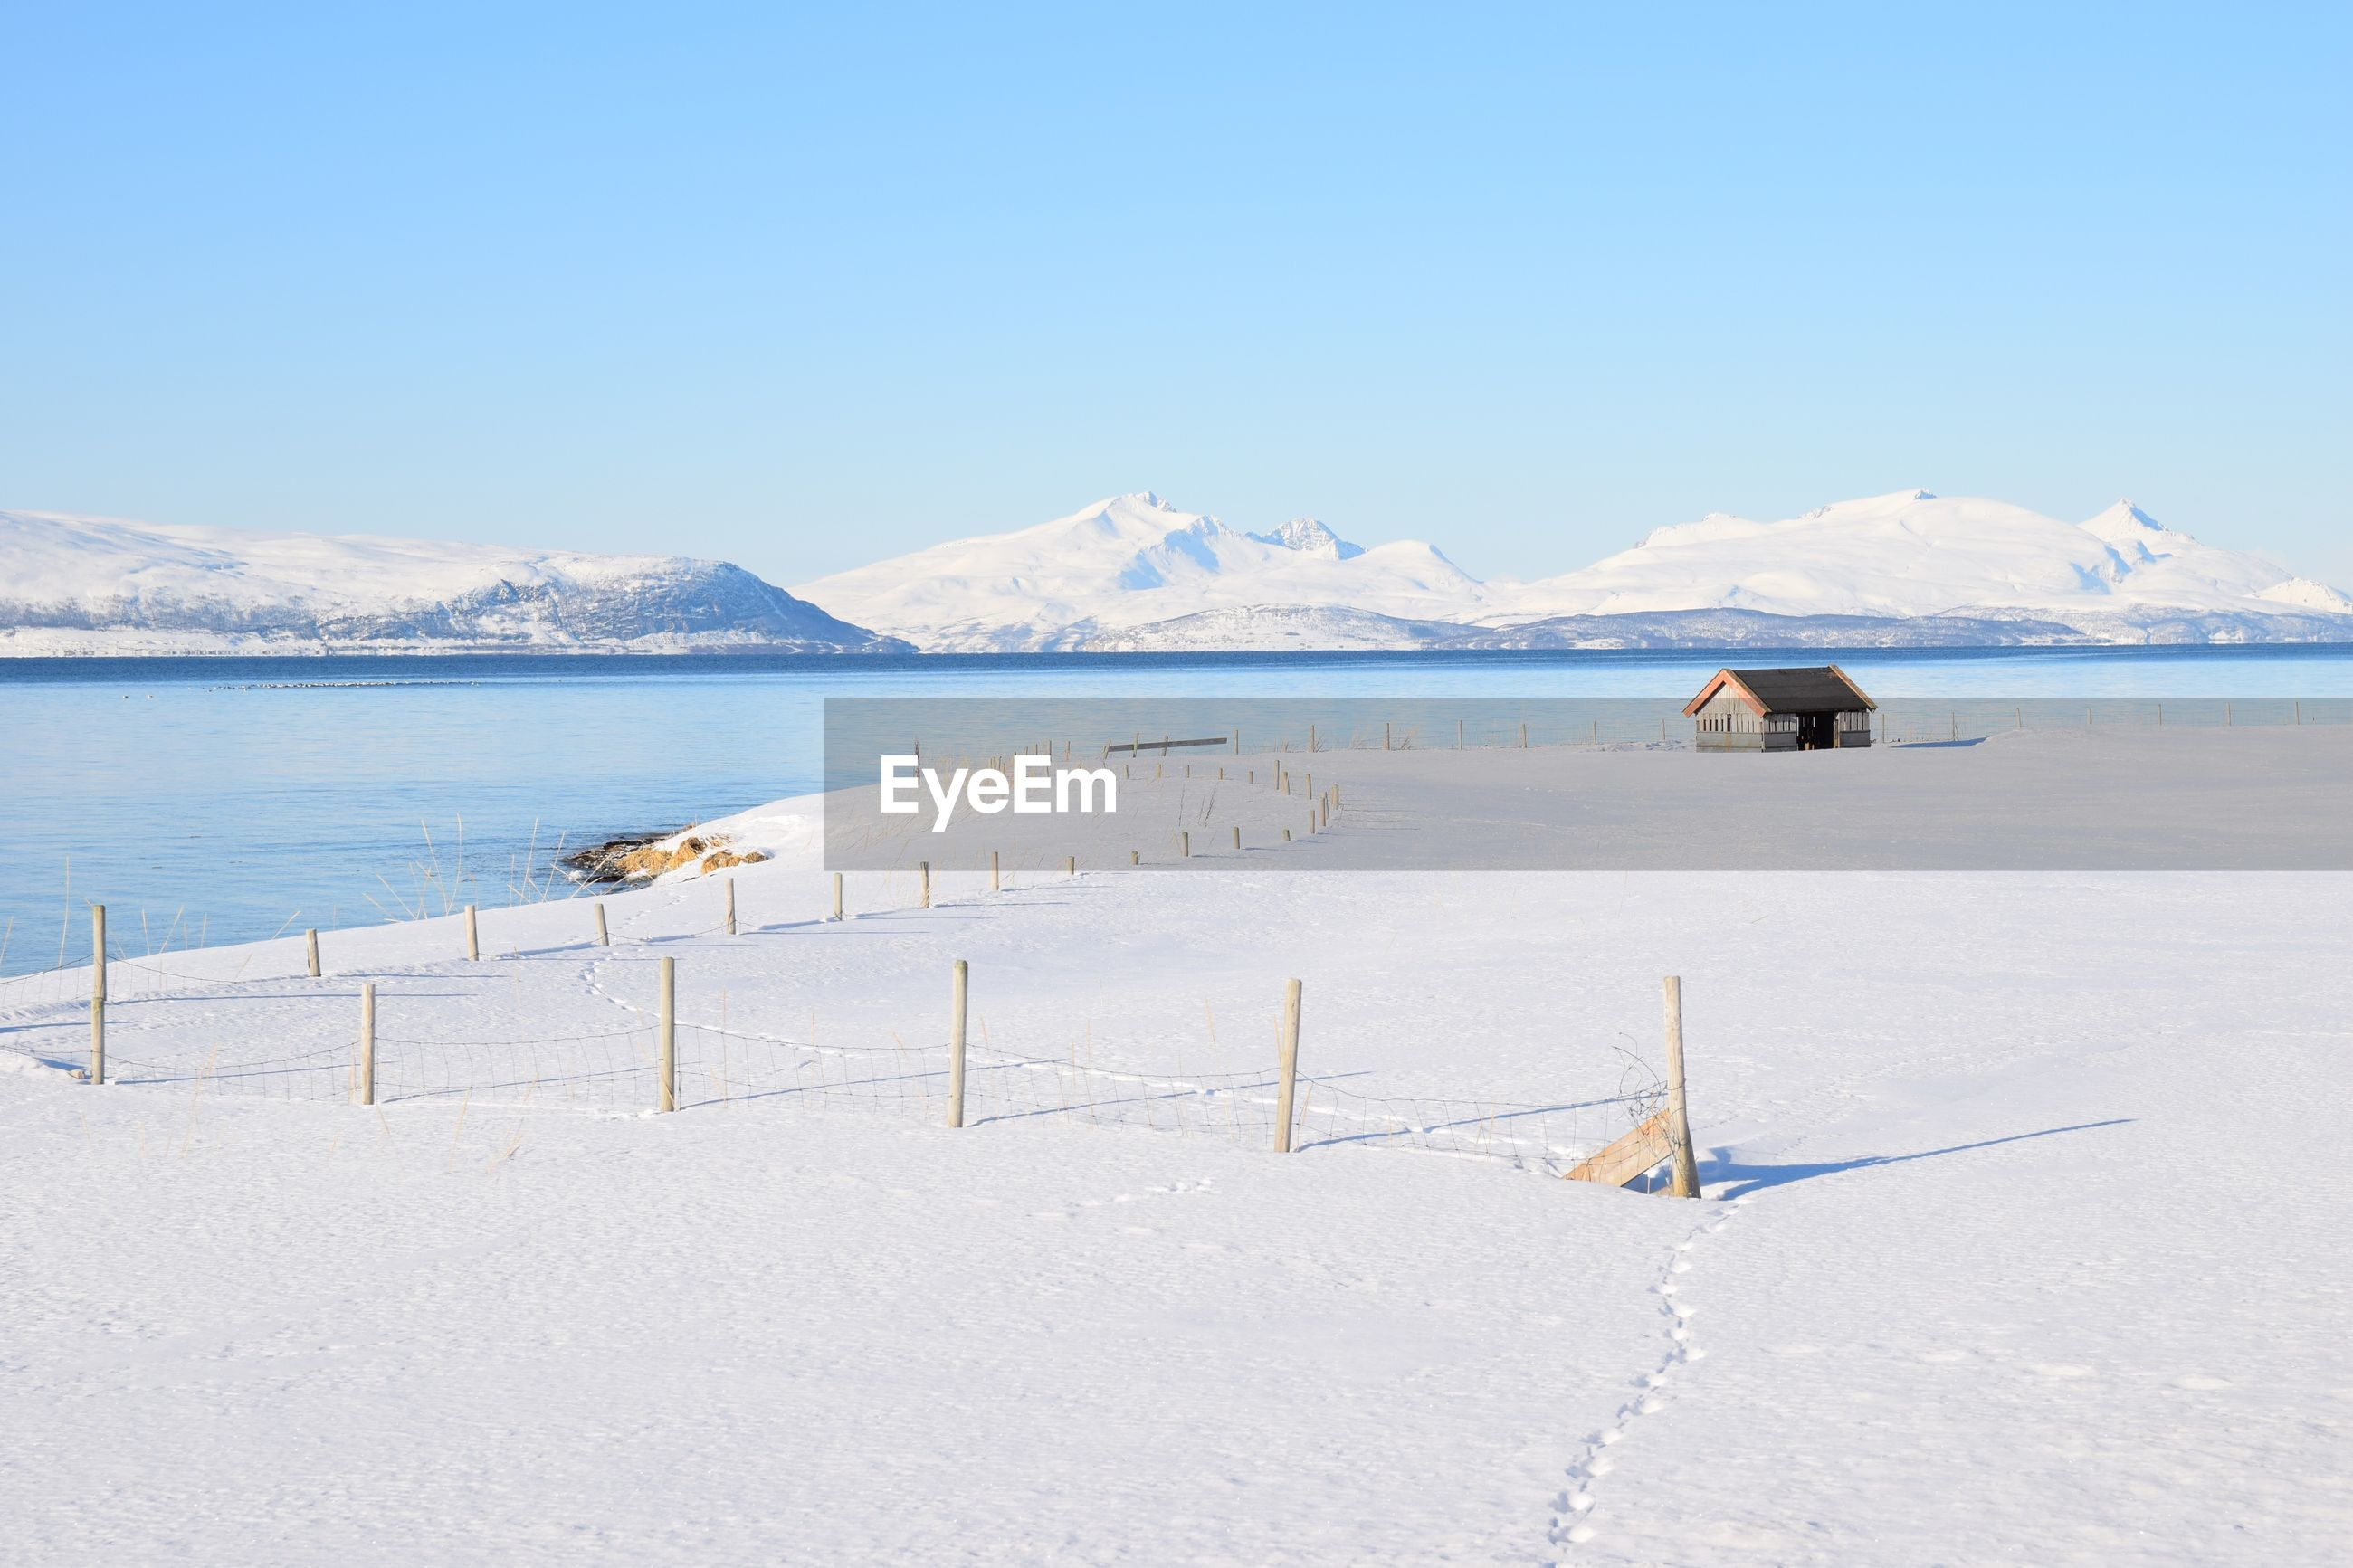 SCENIC VIEW OF SEA AGAINST SNOWCAPPED MOUNTAINS DURING WINTER